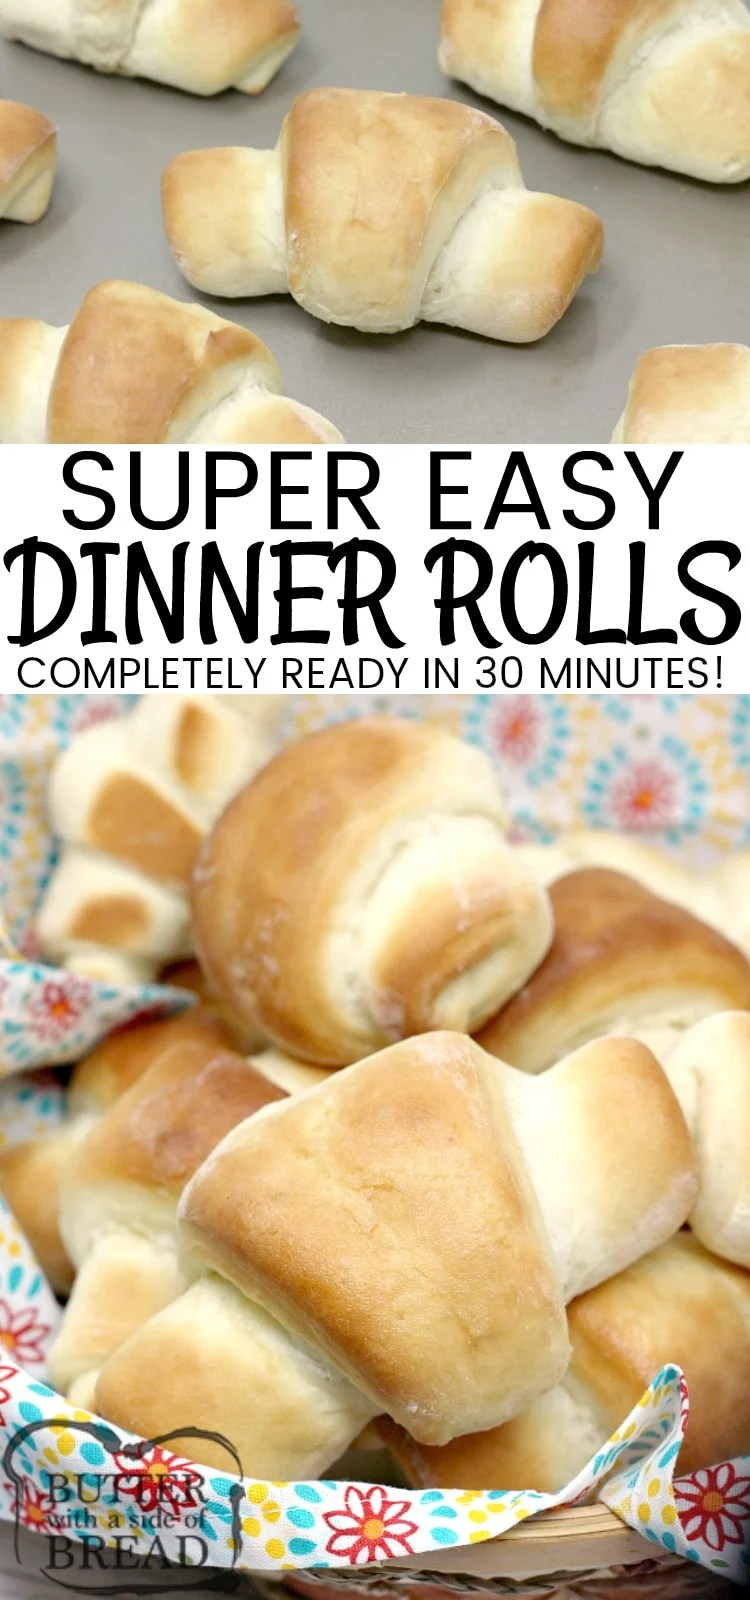 Easy 30-Minute Dinner Rolls are made with a few basic ingredients, you don't need a mixer, and they turn out perfectly soft and delicious every time! The best quick dinner roll recipe I have ever tried!